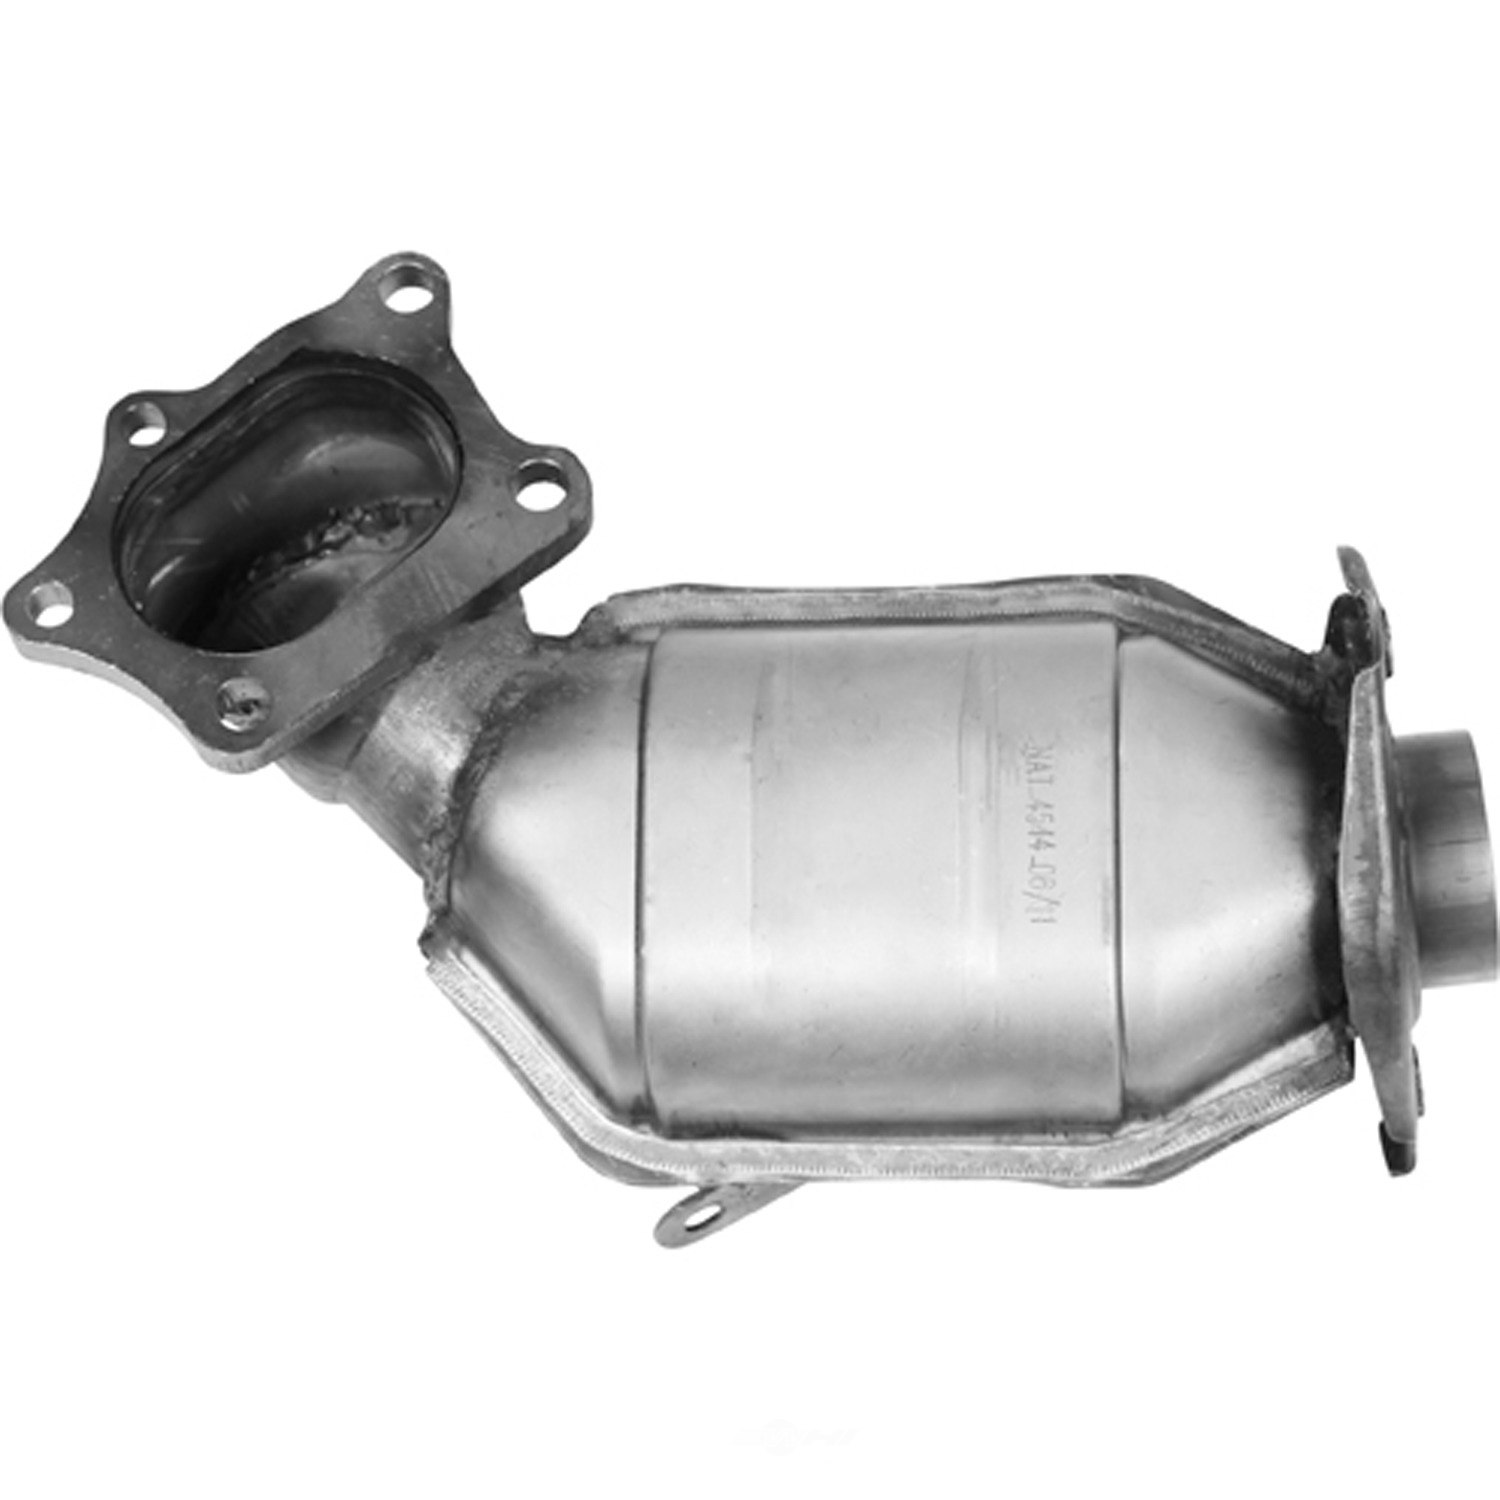 catalytic converter front ap exhaust 642160 fits 07 09. Black Bedroom Furniture Sets. Home Design Ideas